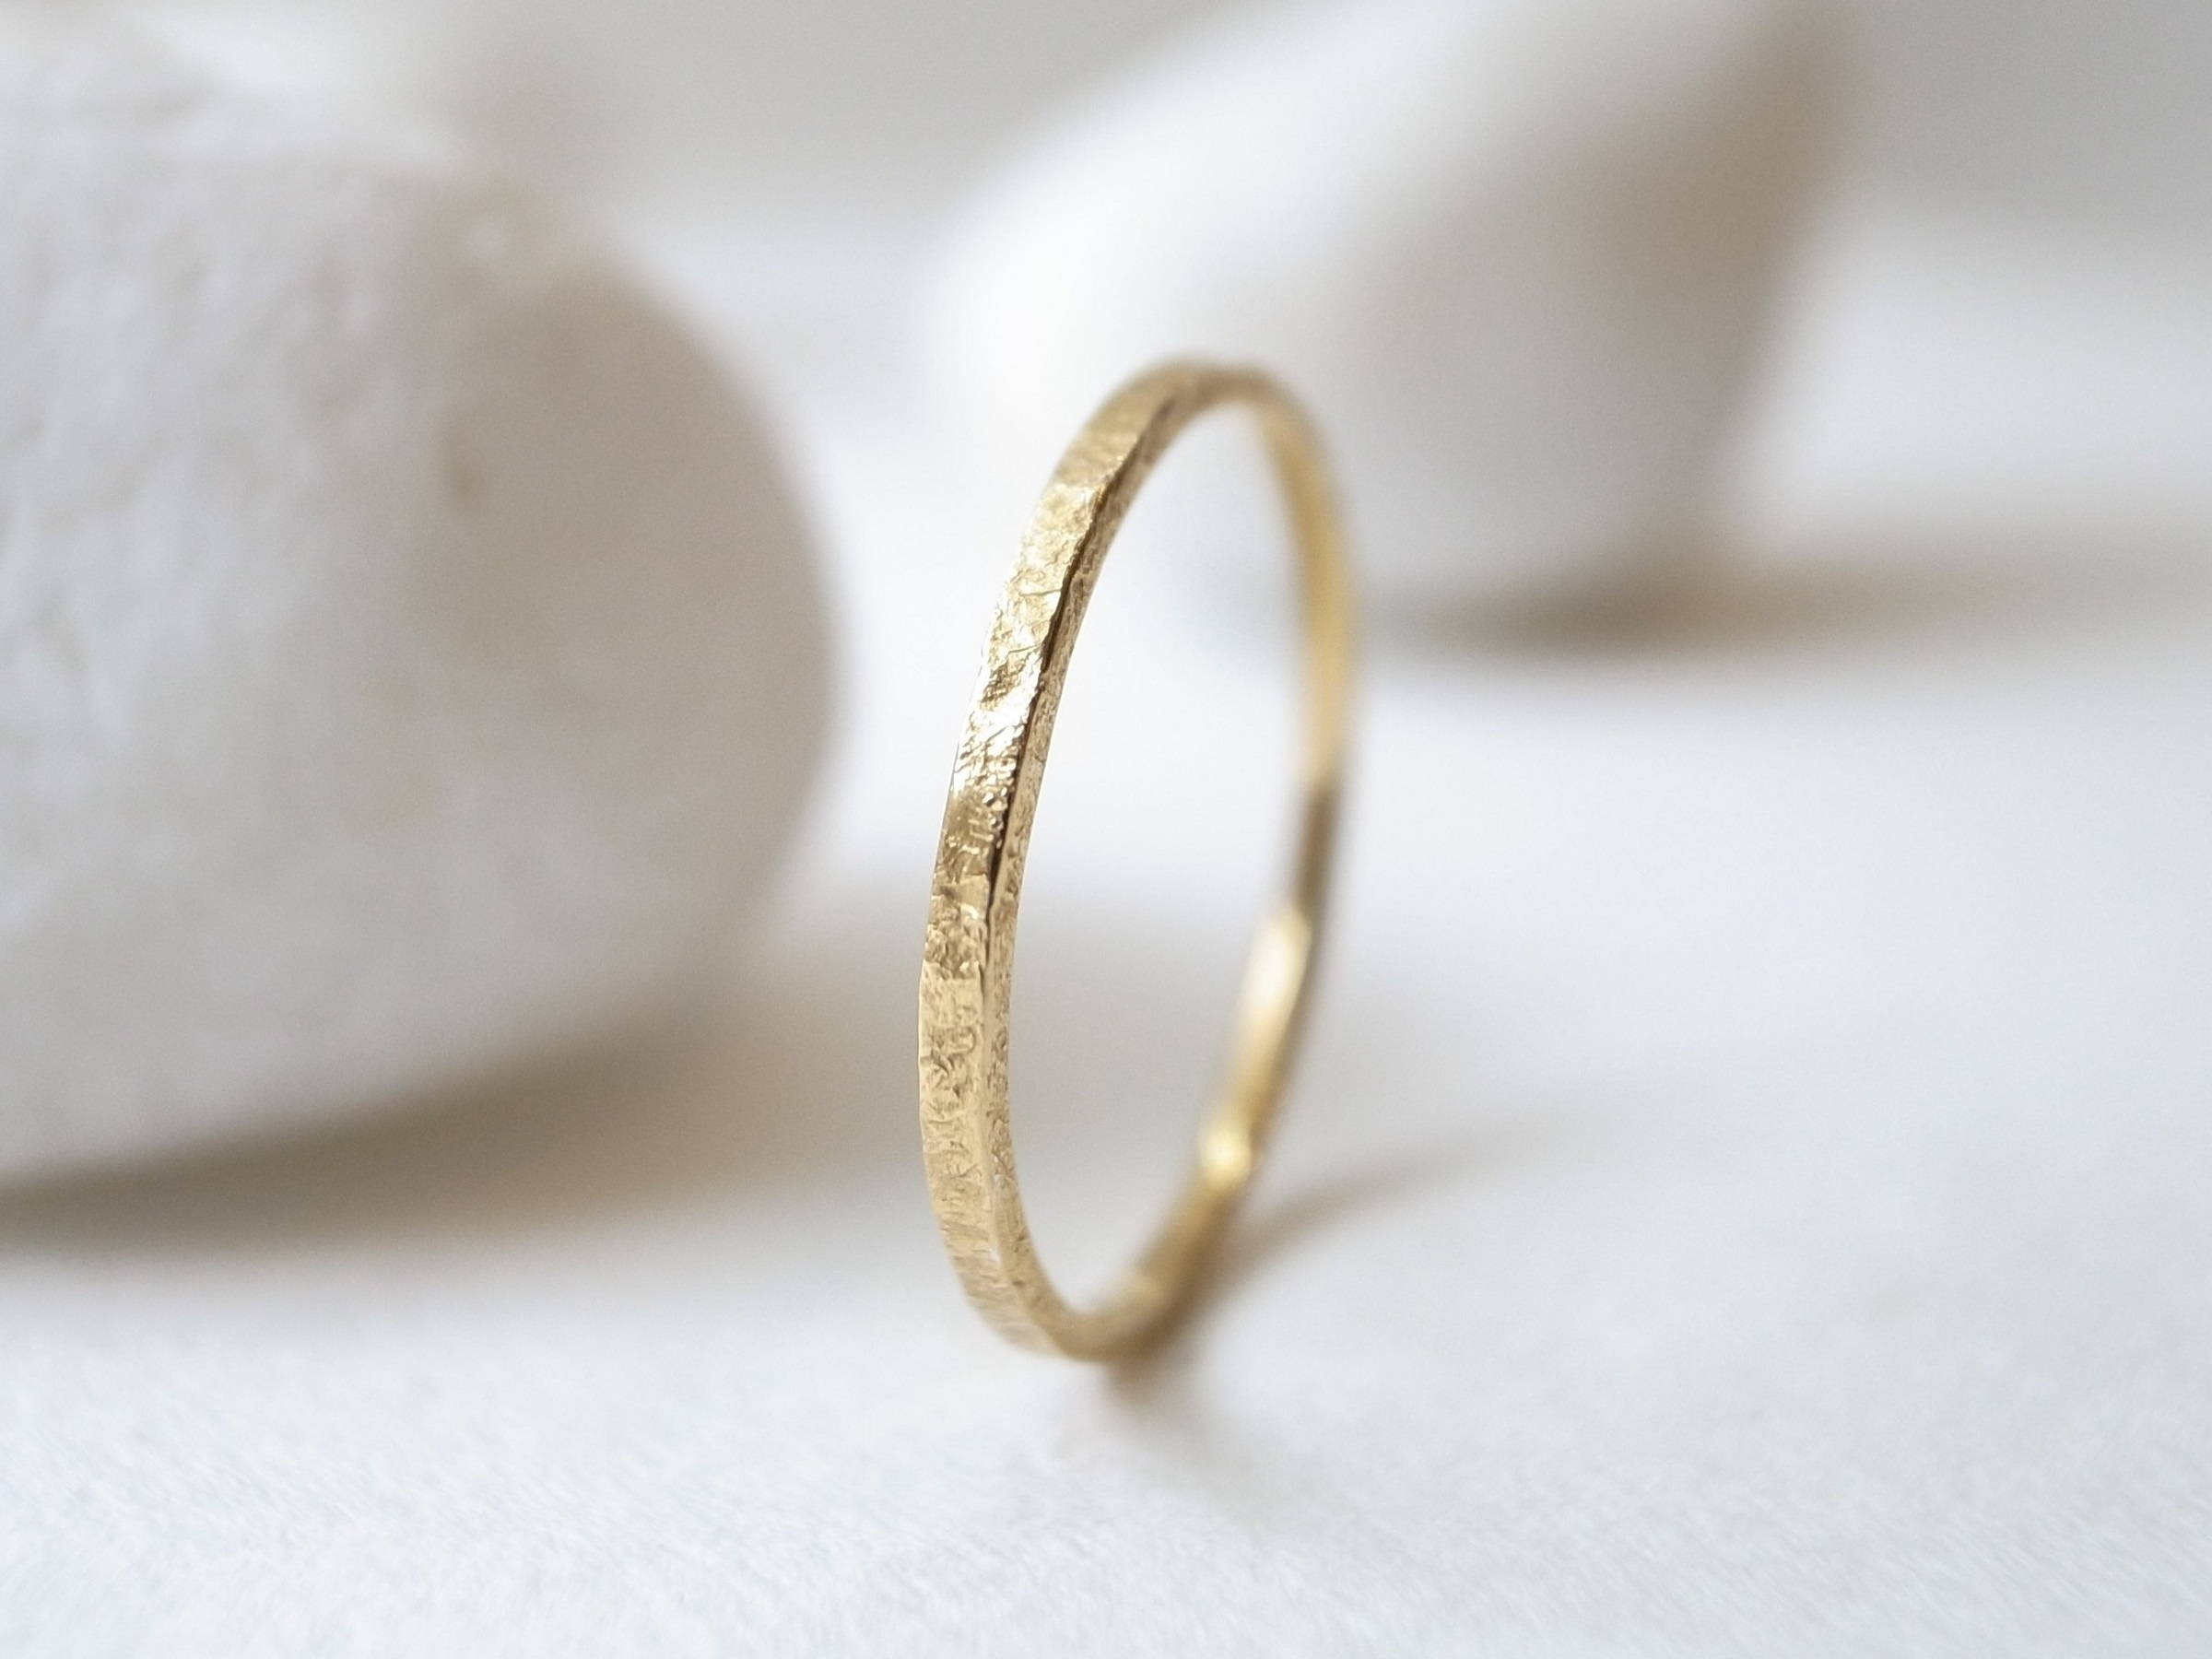 K18YG/stone texture ring